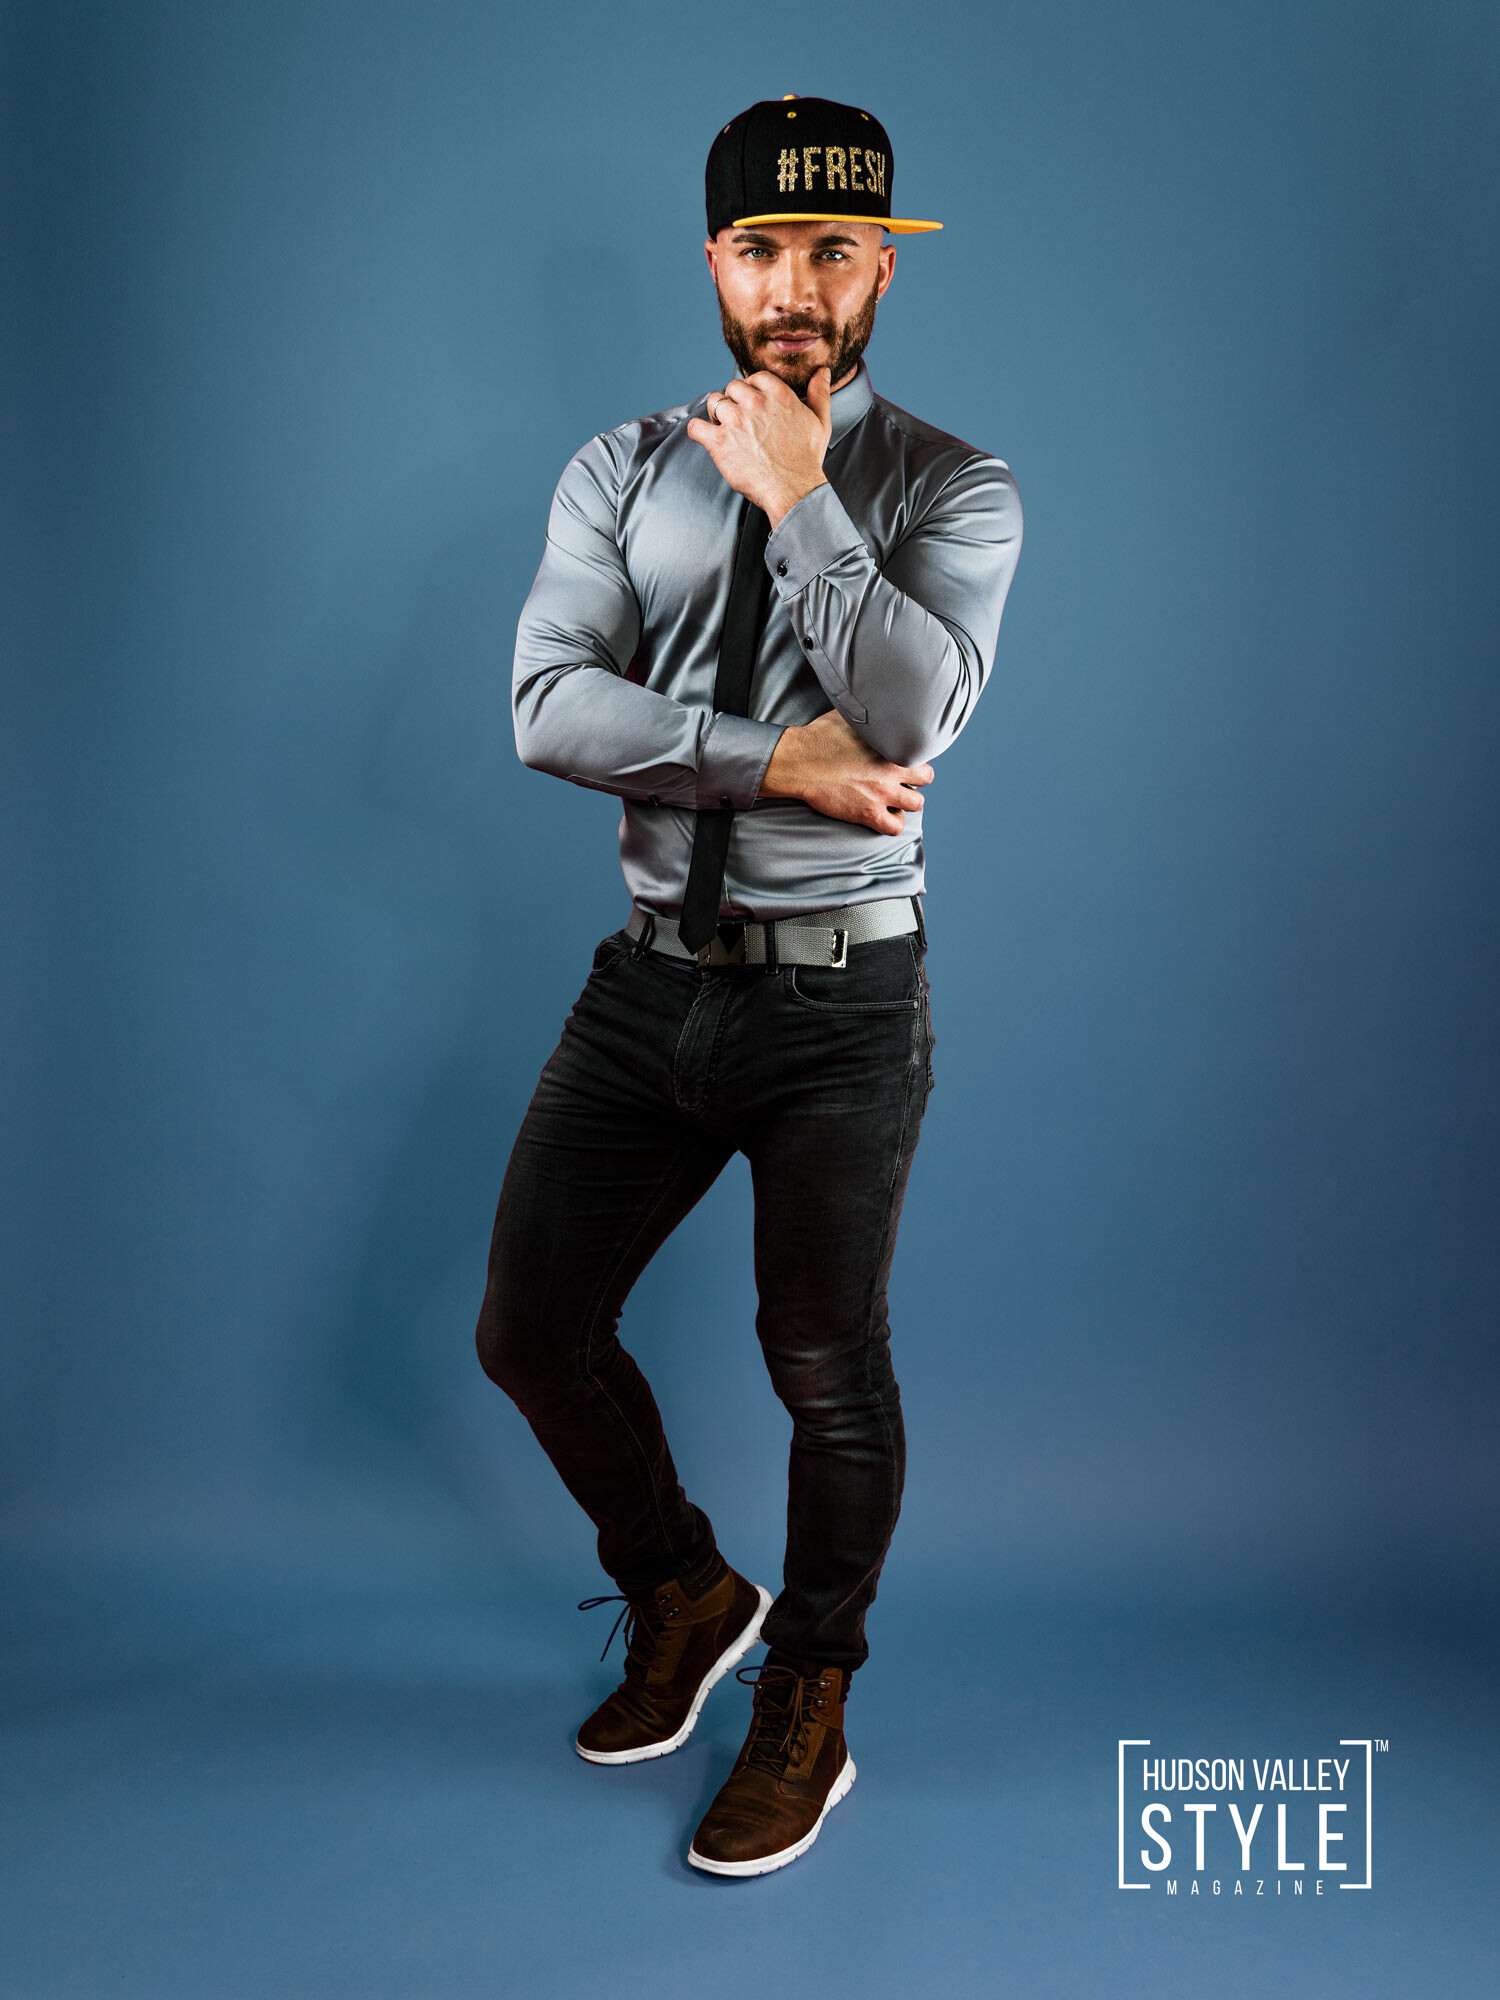 See How a Simple Mens Shirt Can Enhance Your Style, Personality and Appearance in a Matter of Moments?